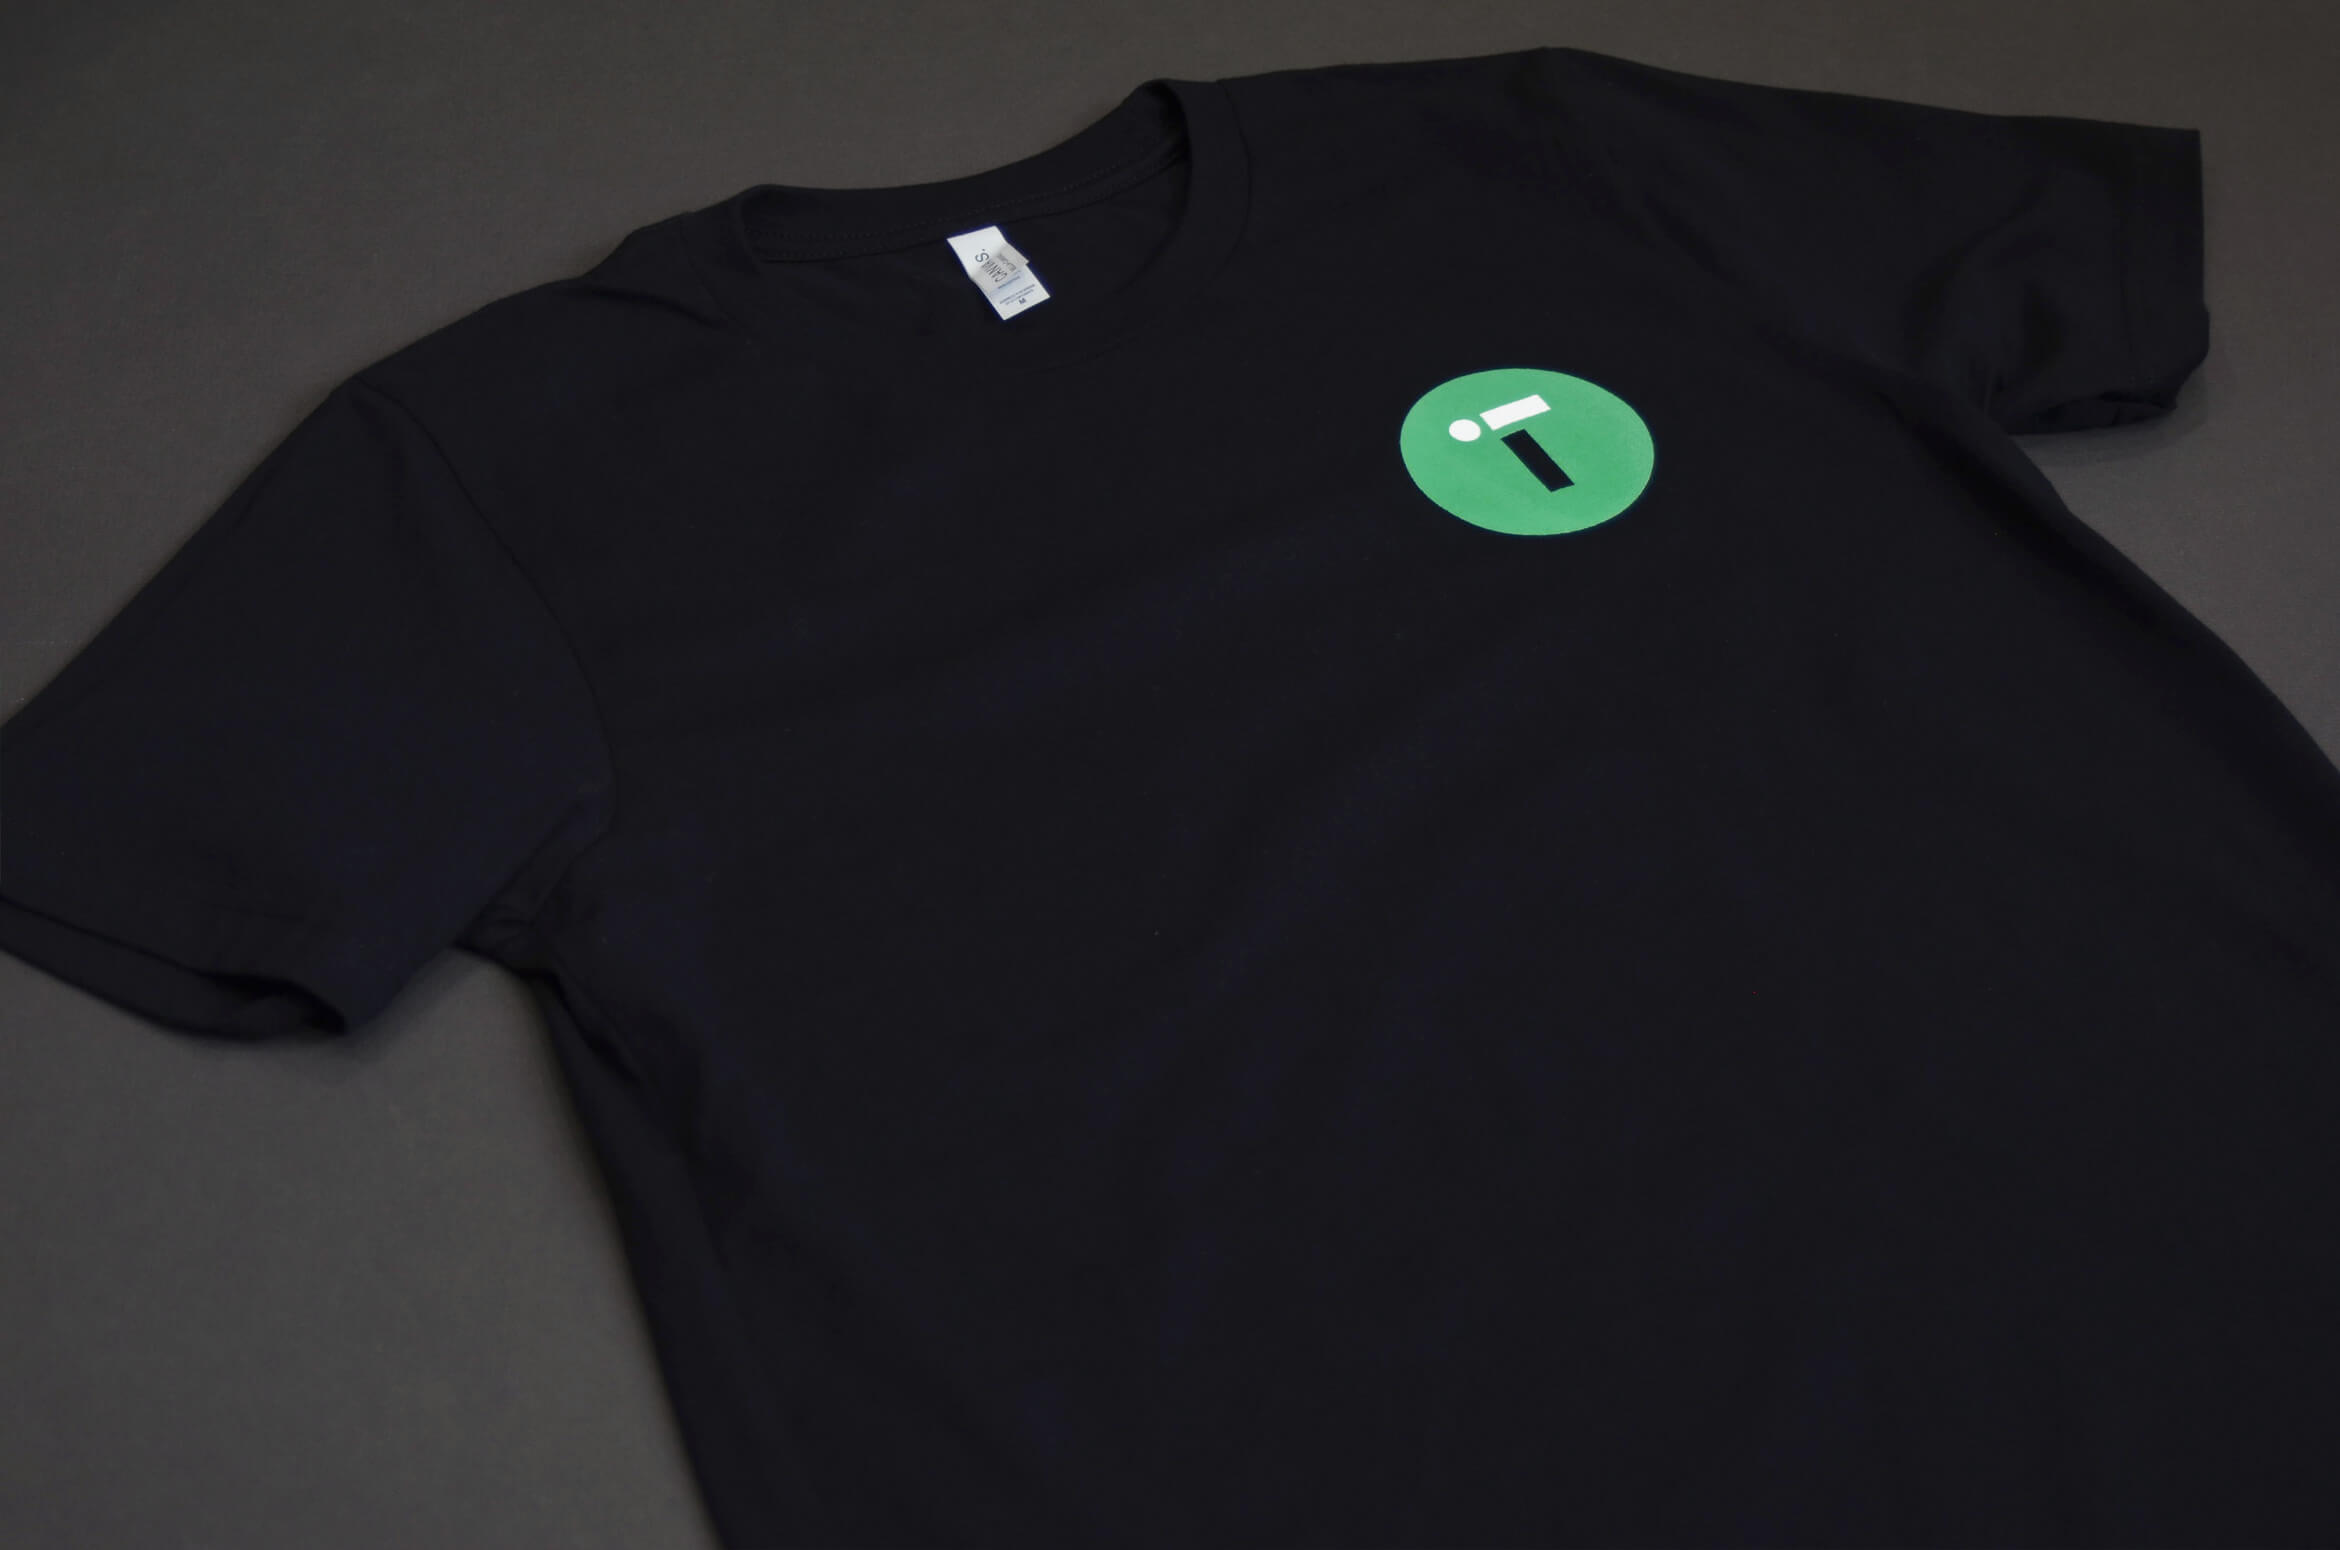 Black T-shirt with IT Retail's circular green logo on the chest pocket.